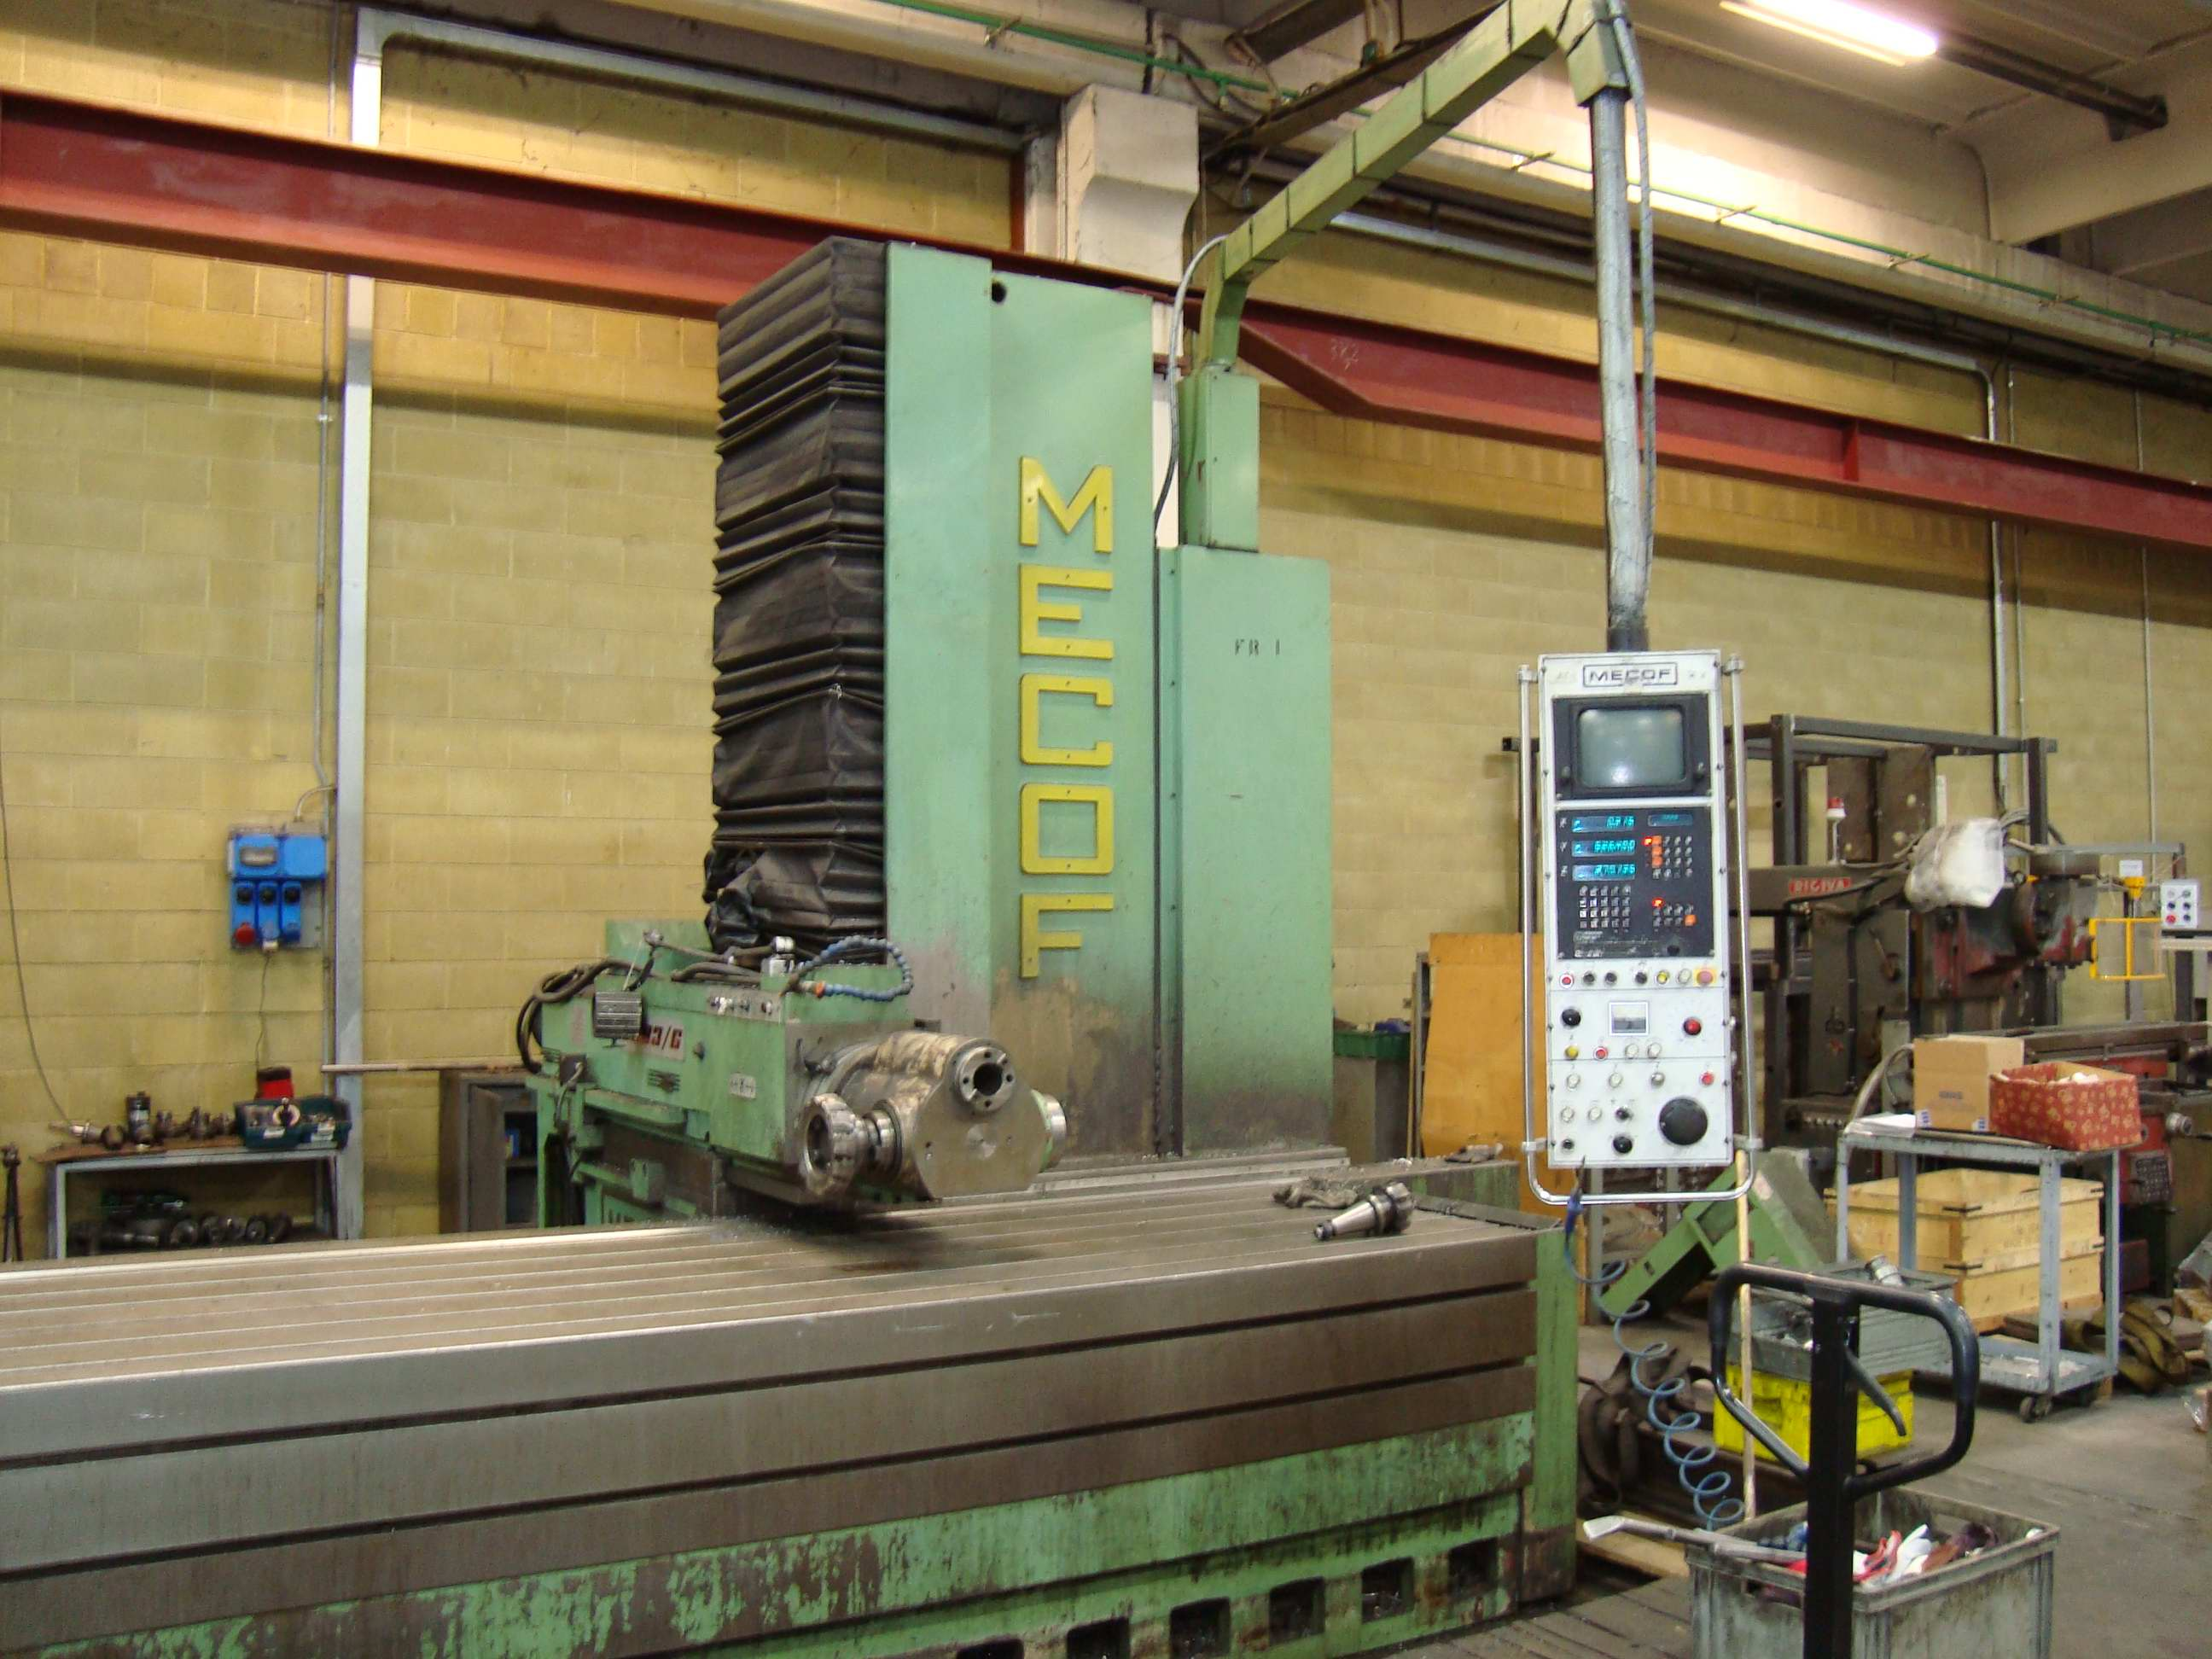 MECOF CS 83 G Bed type milling machine - Exapro